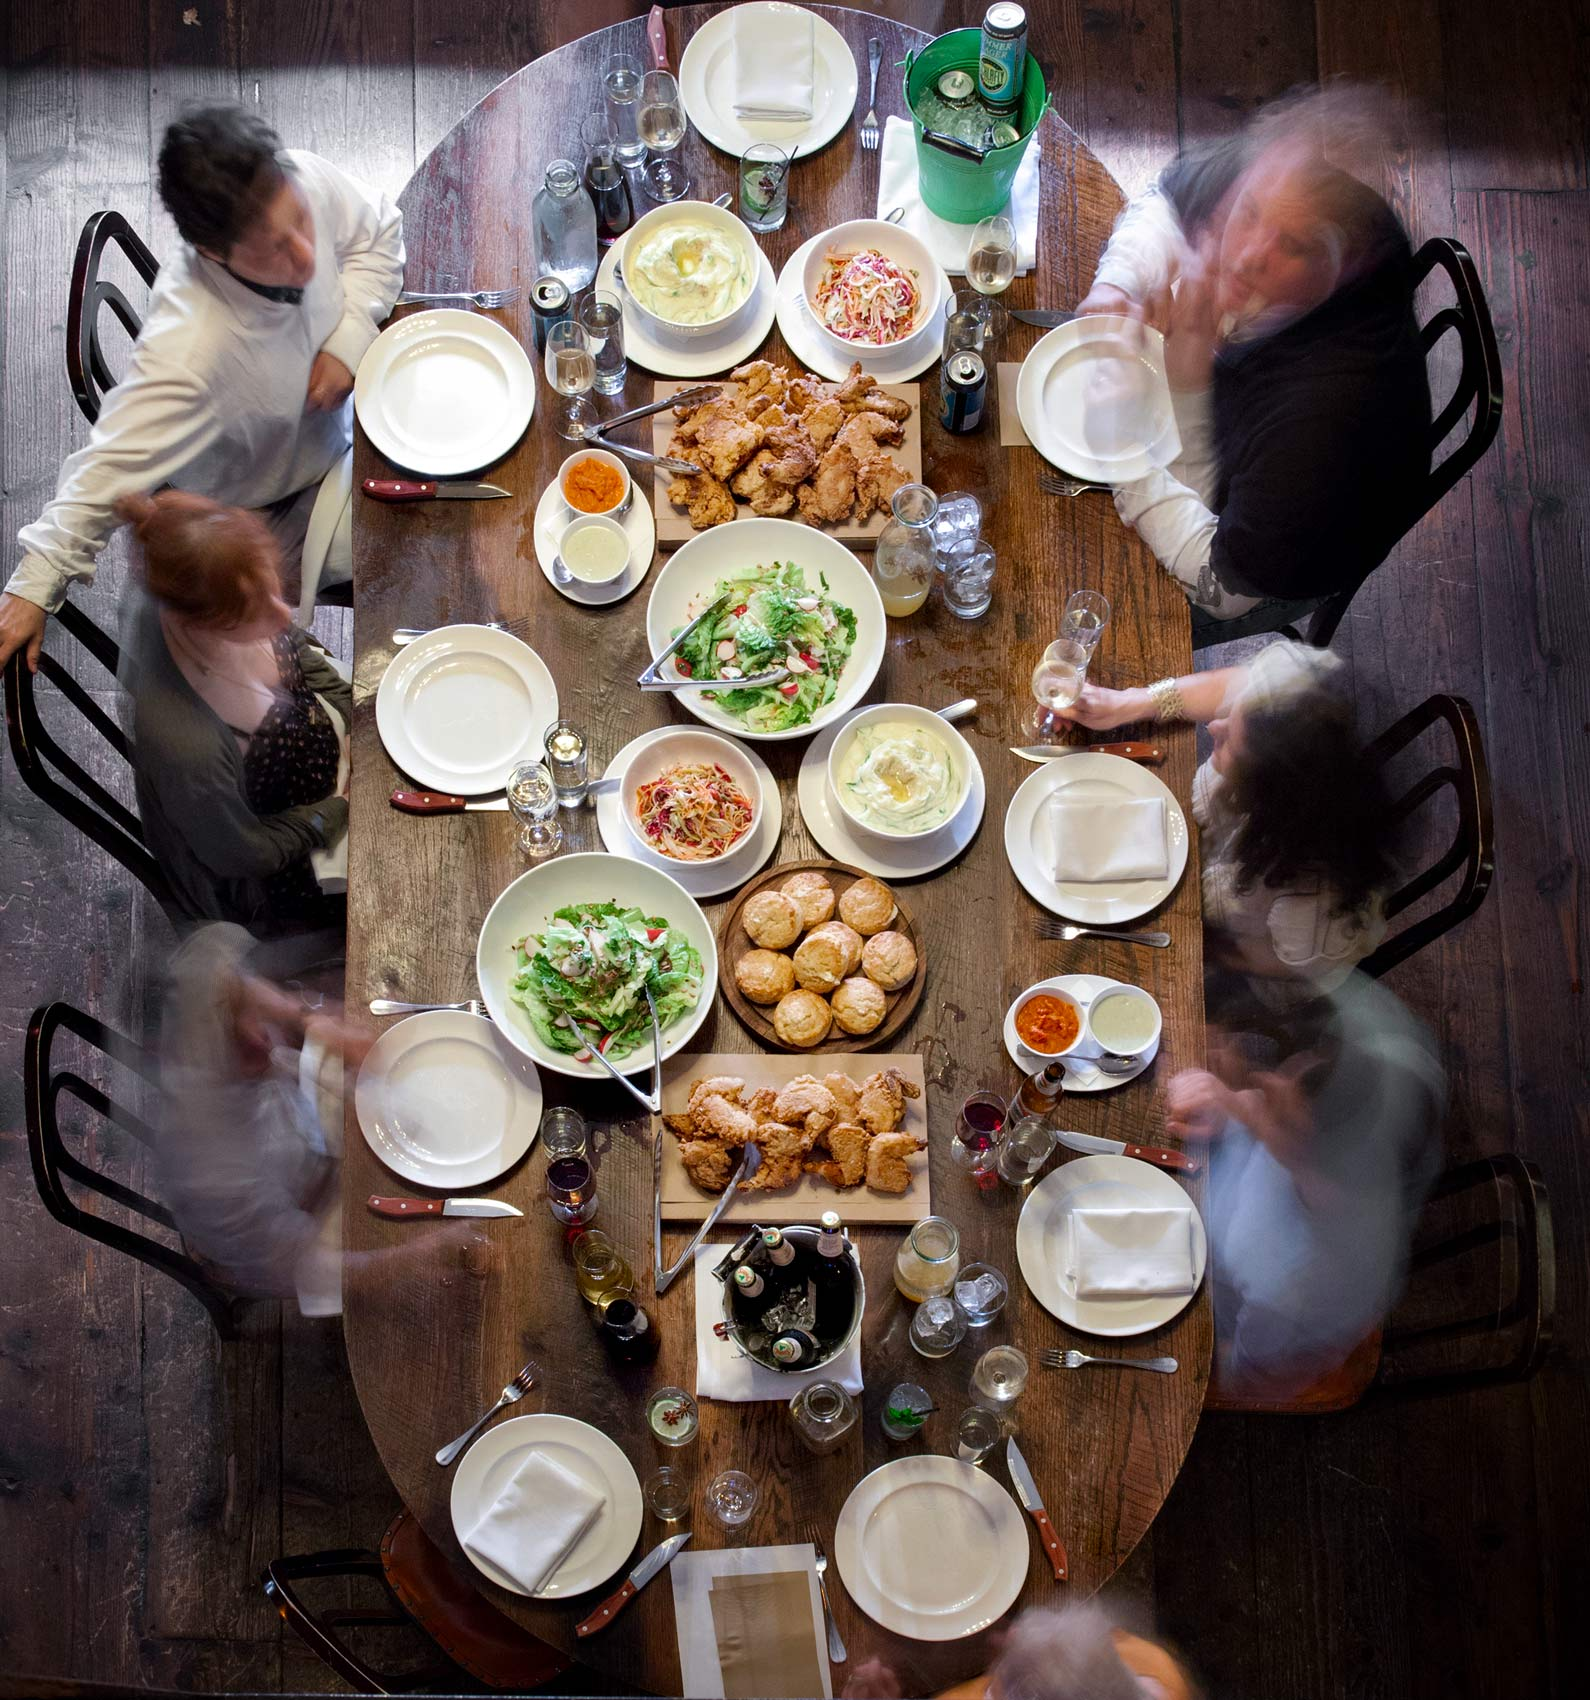 Overhead Dining Photography at the Breslin at the Ace Hotel